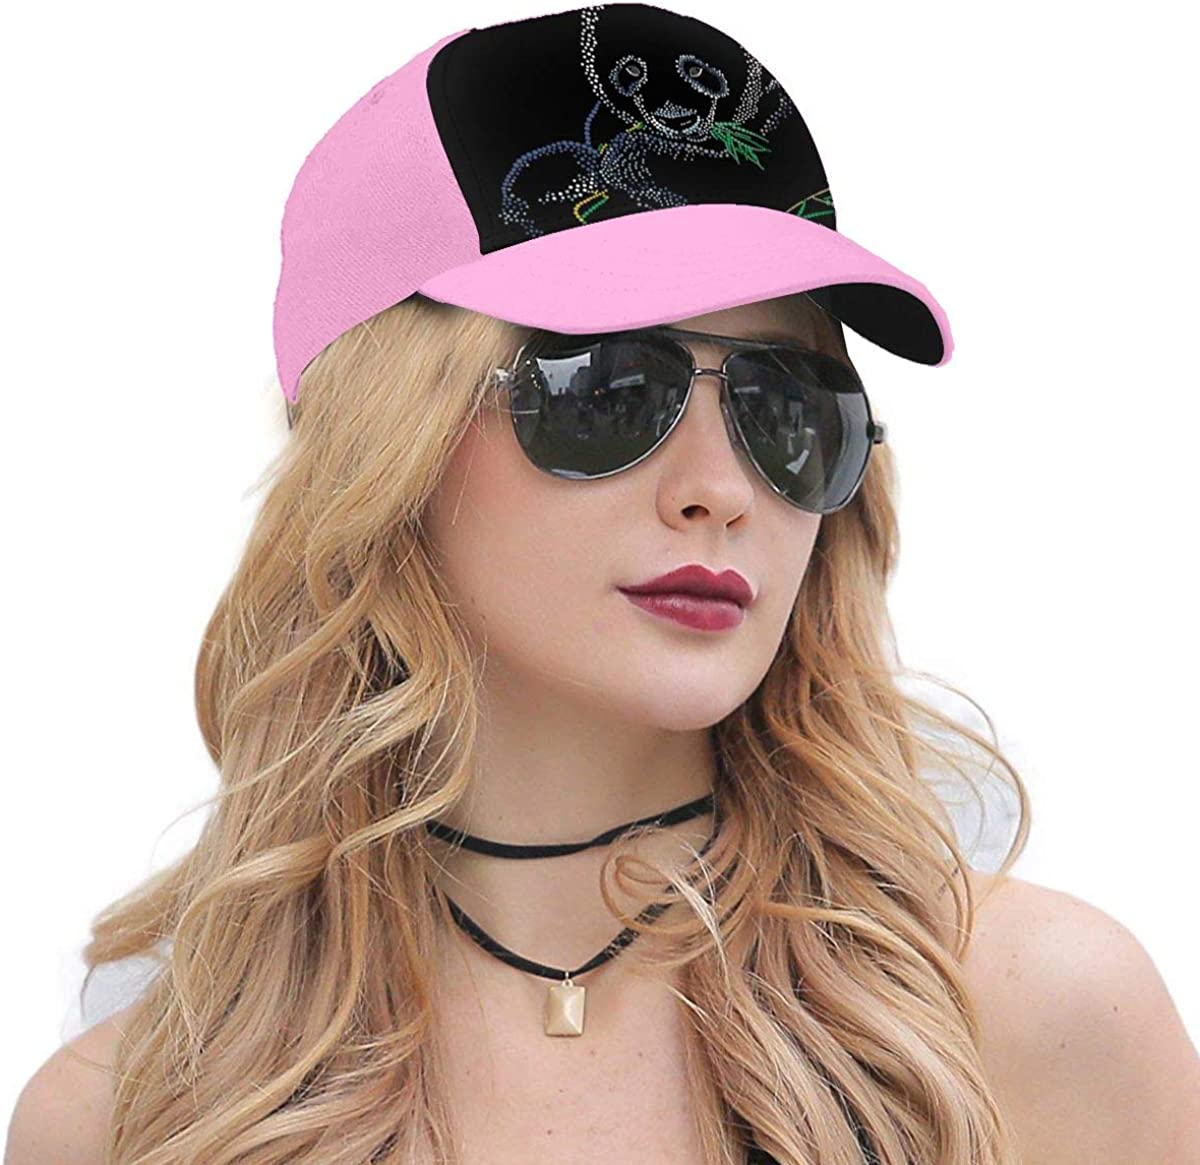 Panda Eating Bamboo Classic Style Baseball Cap All Cotton Made Adjustable Fits Men Women Low Profile Hat